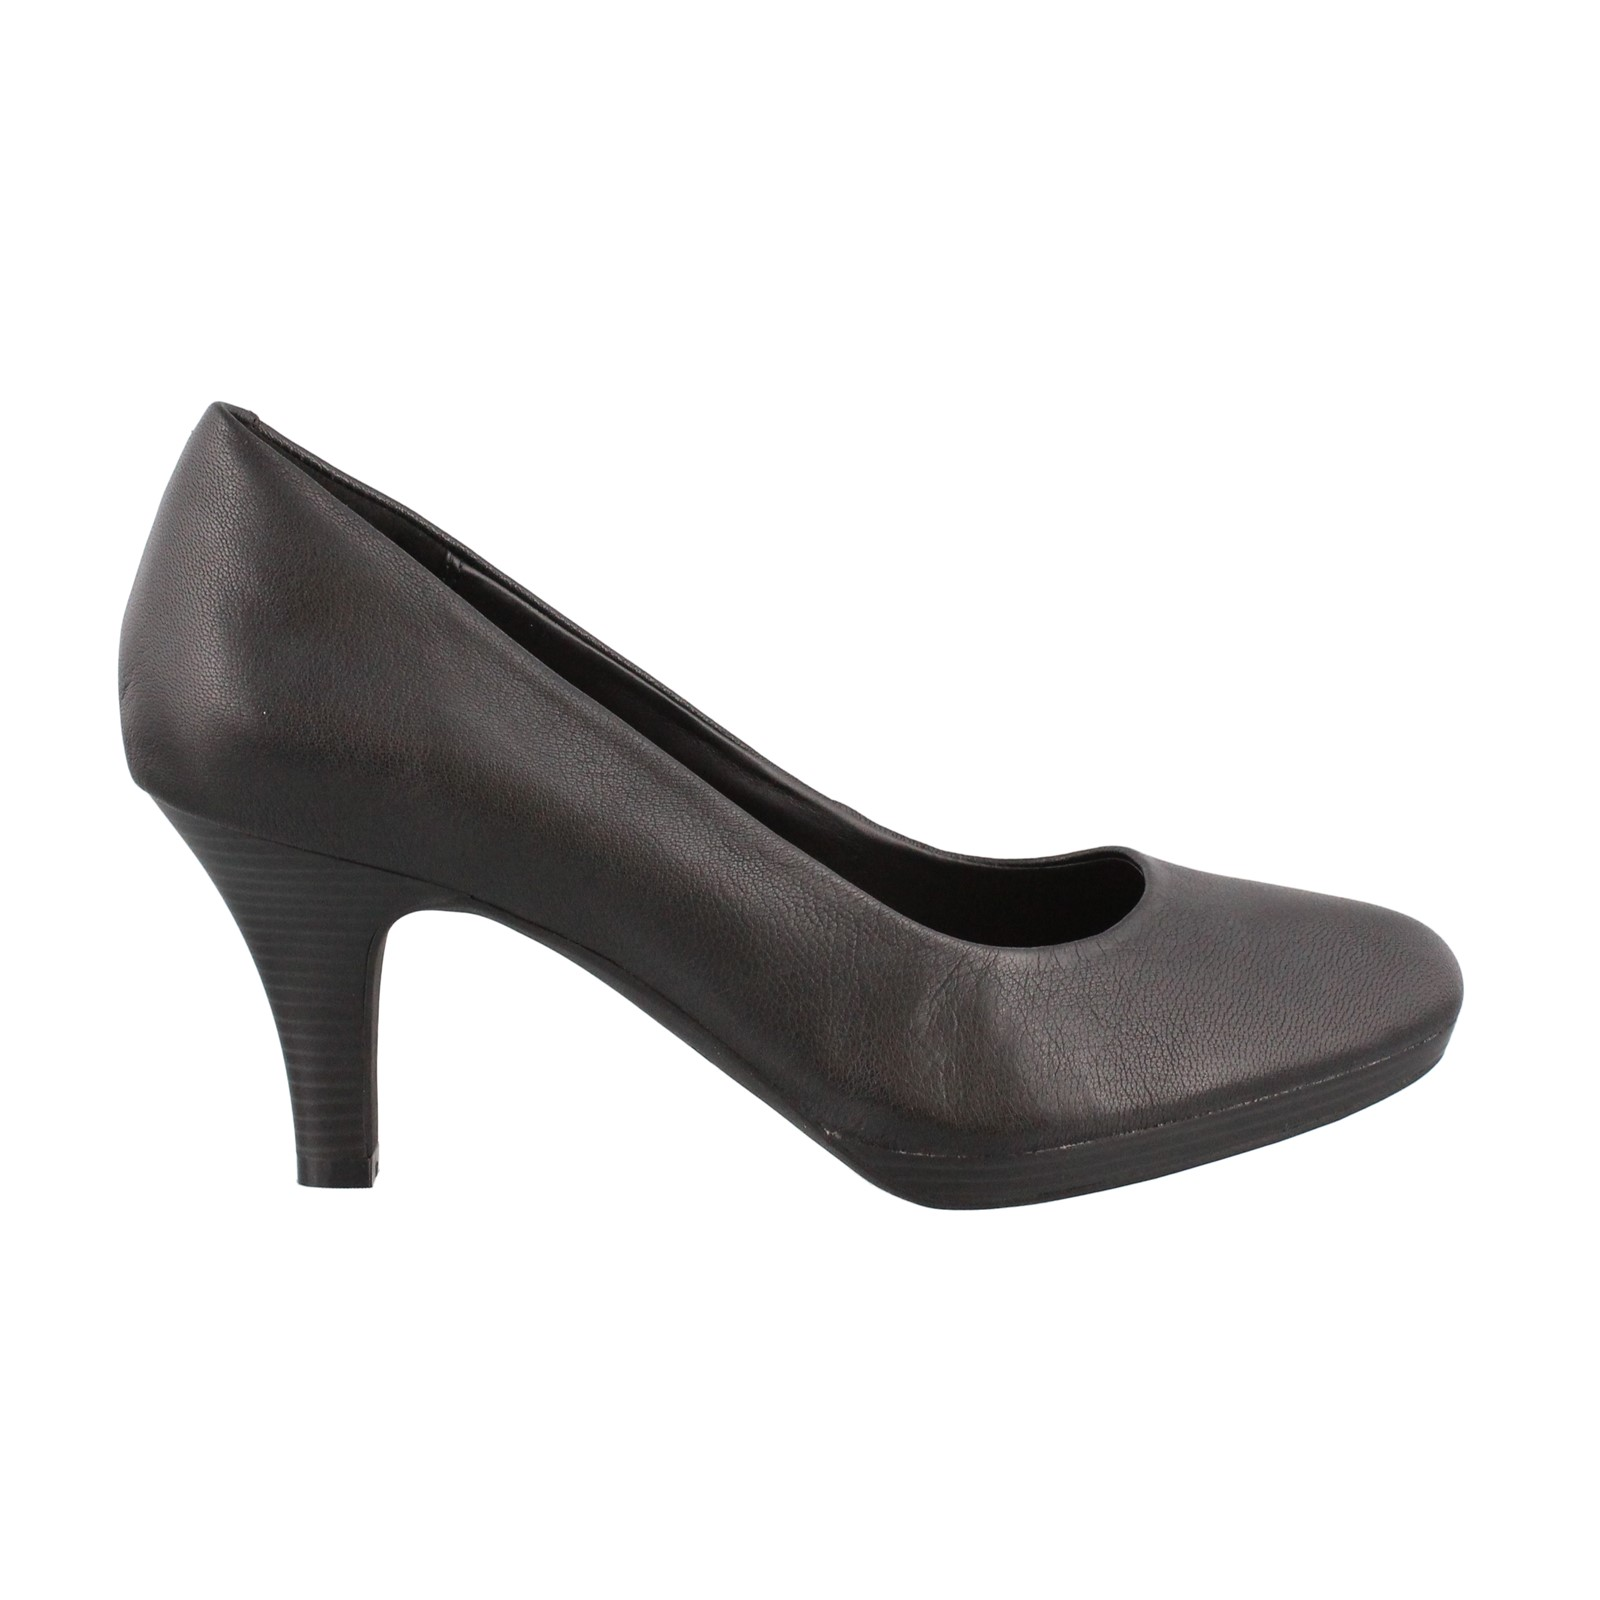 Women's Clarks, Brenna Maple High Heel Pump